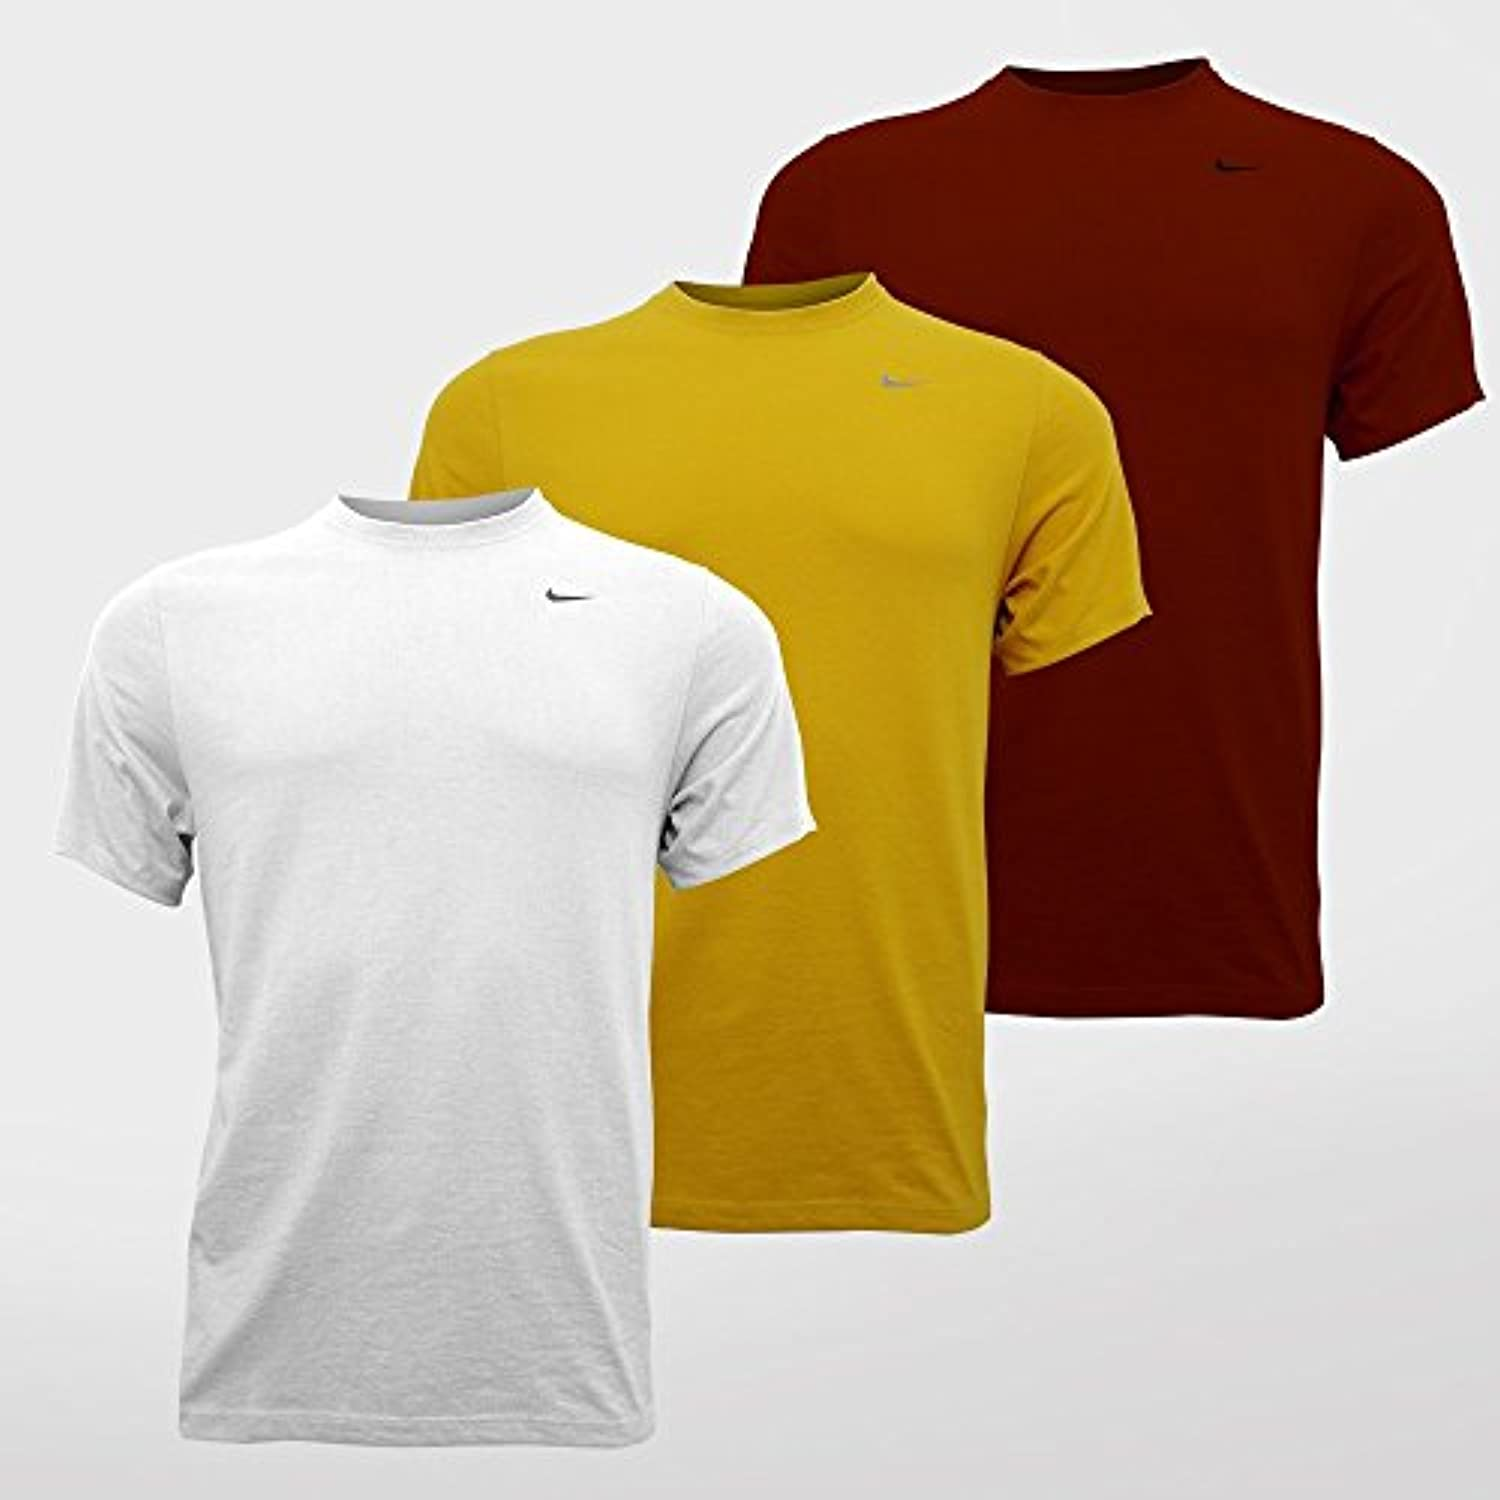 CAMISETA SWOOSH (MENS) - XL